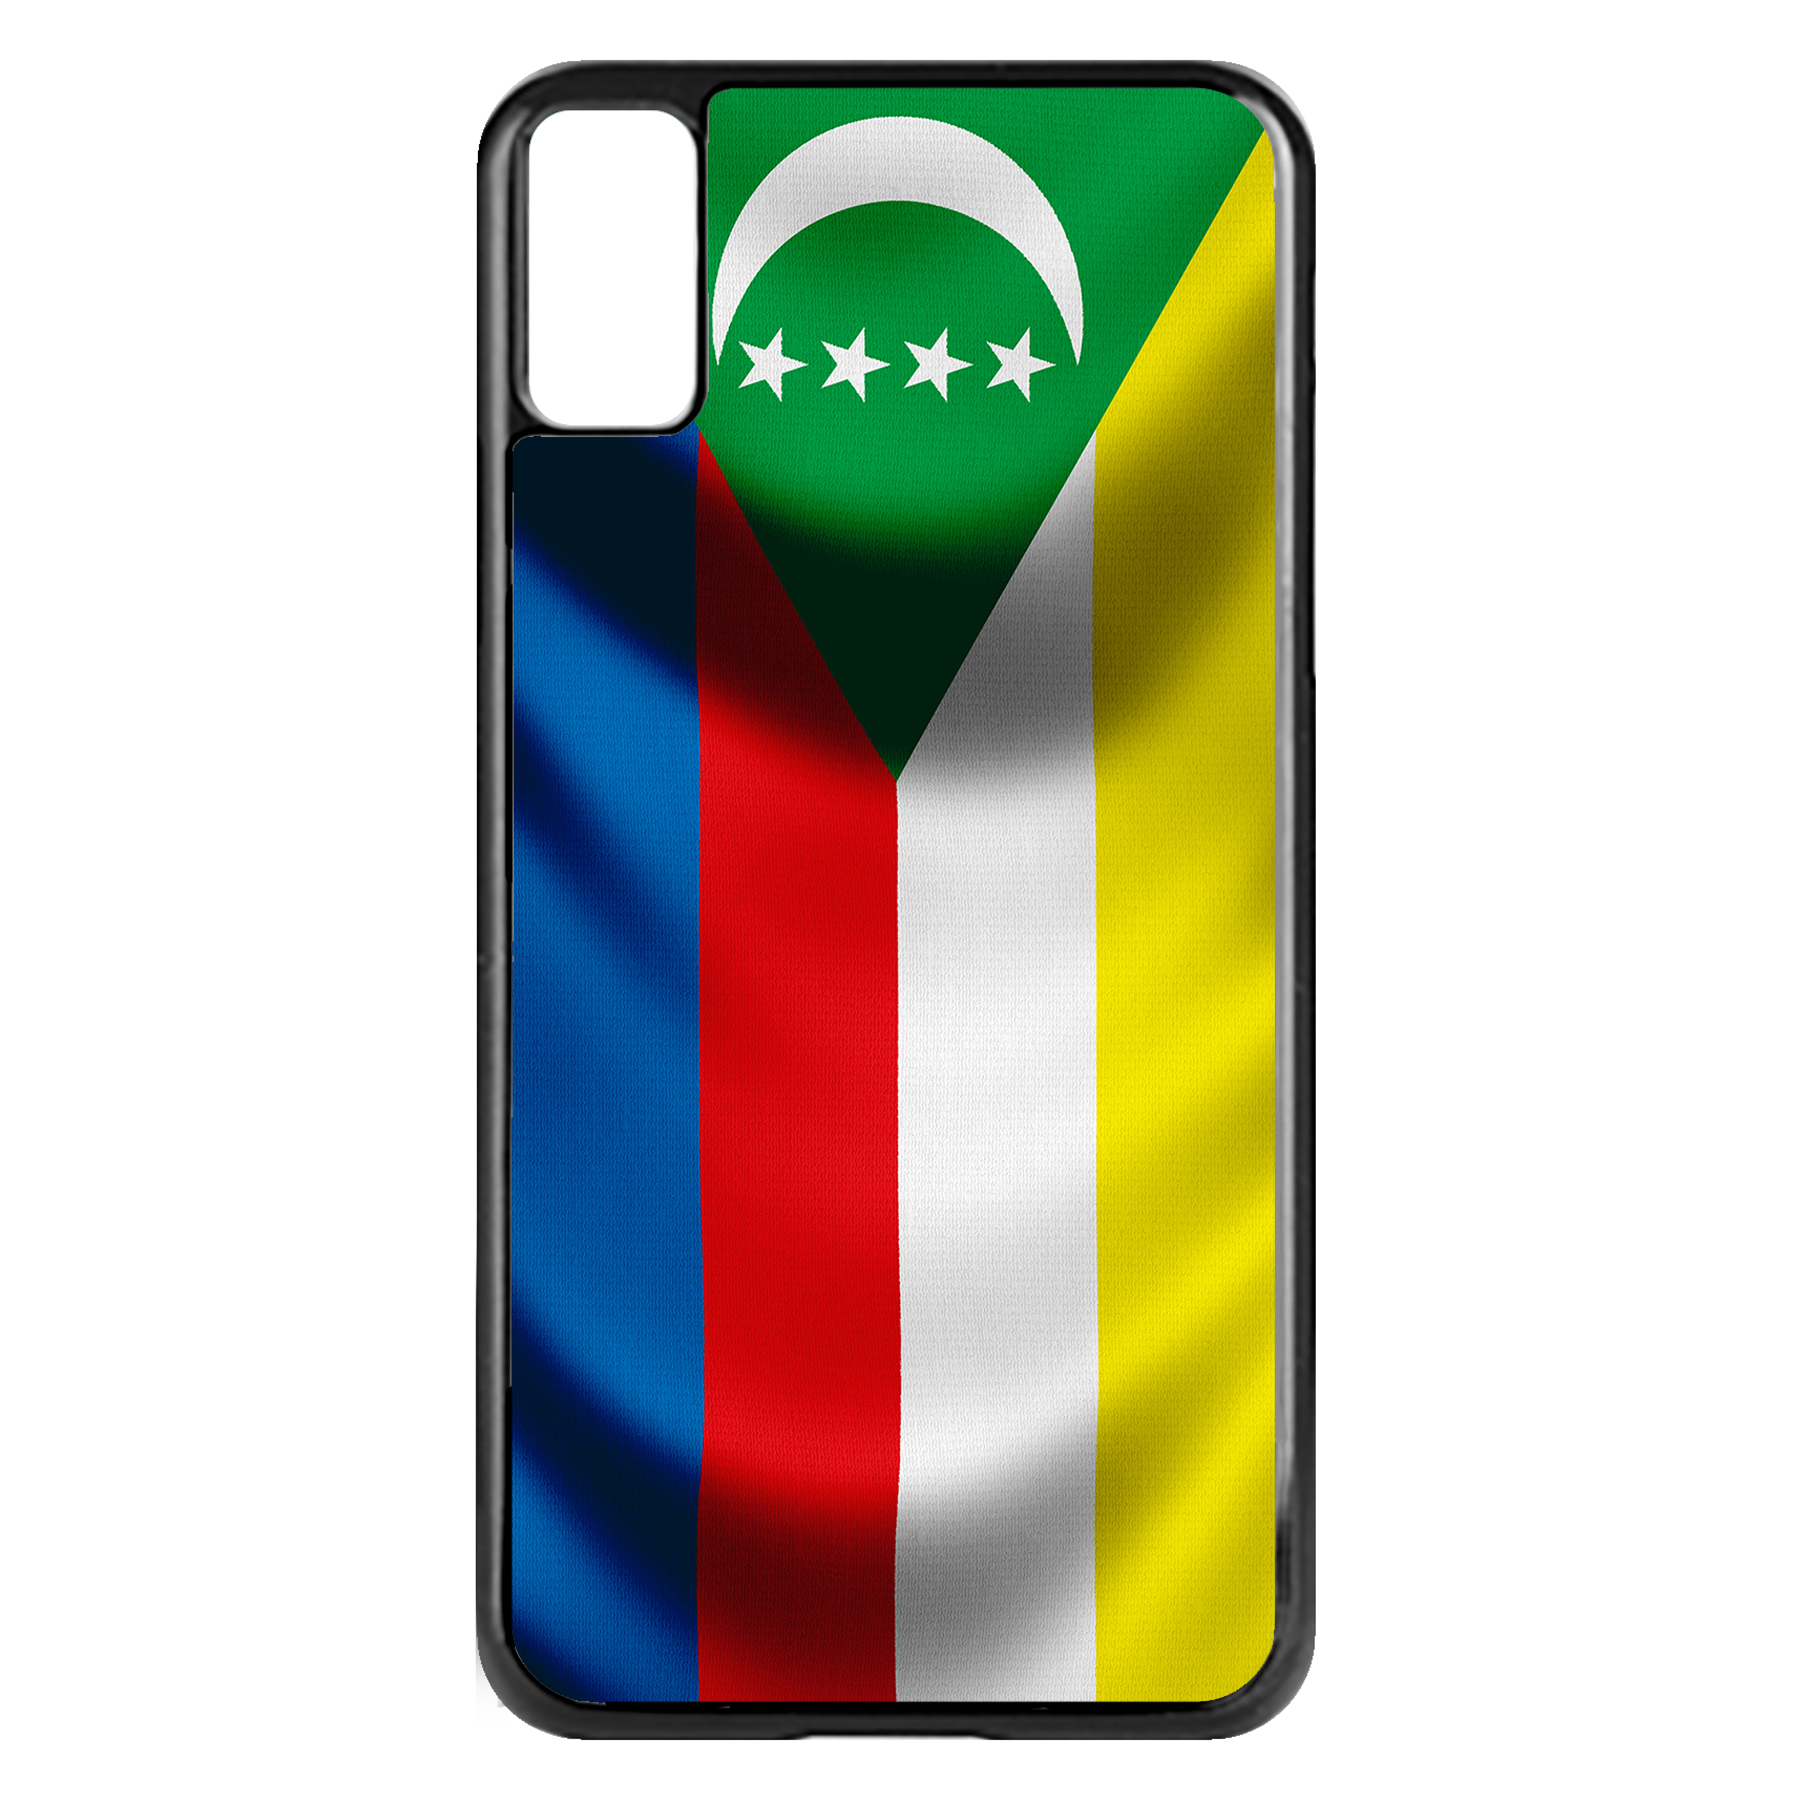 Apple-iPhone-Case-with-Flag-of-Comoros-Comorian-Many-Design-Options thumbnail 25